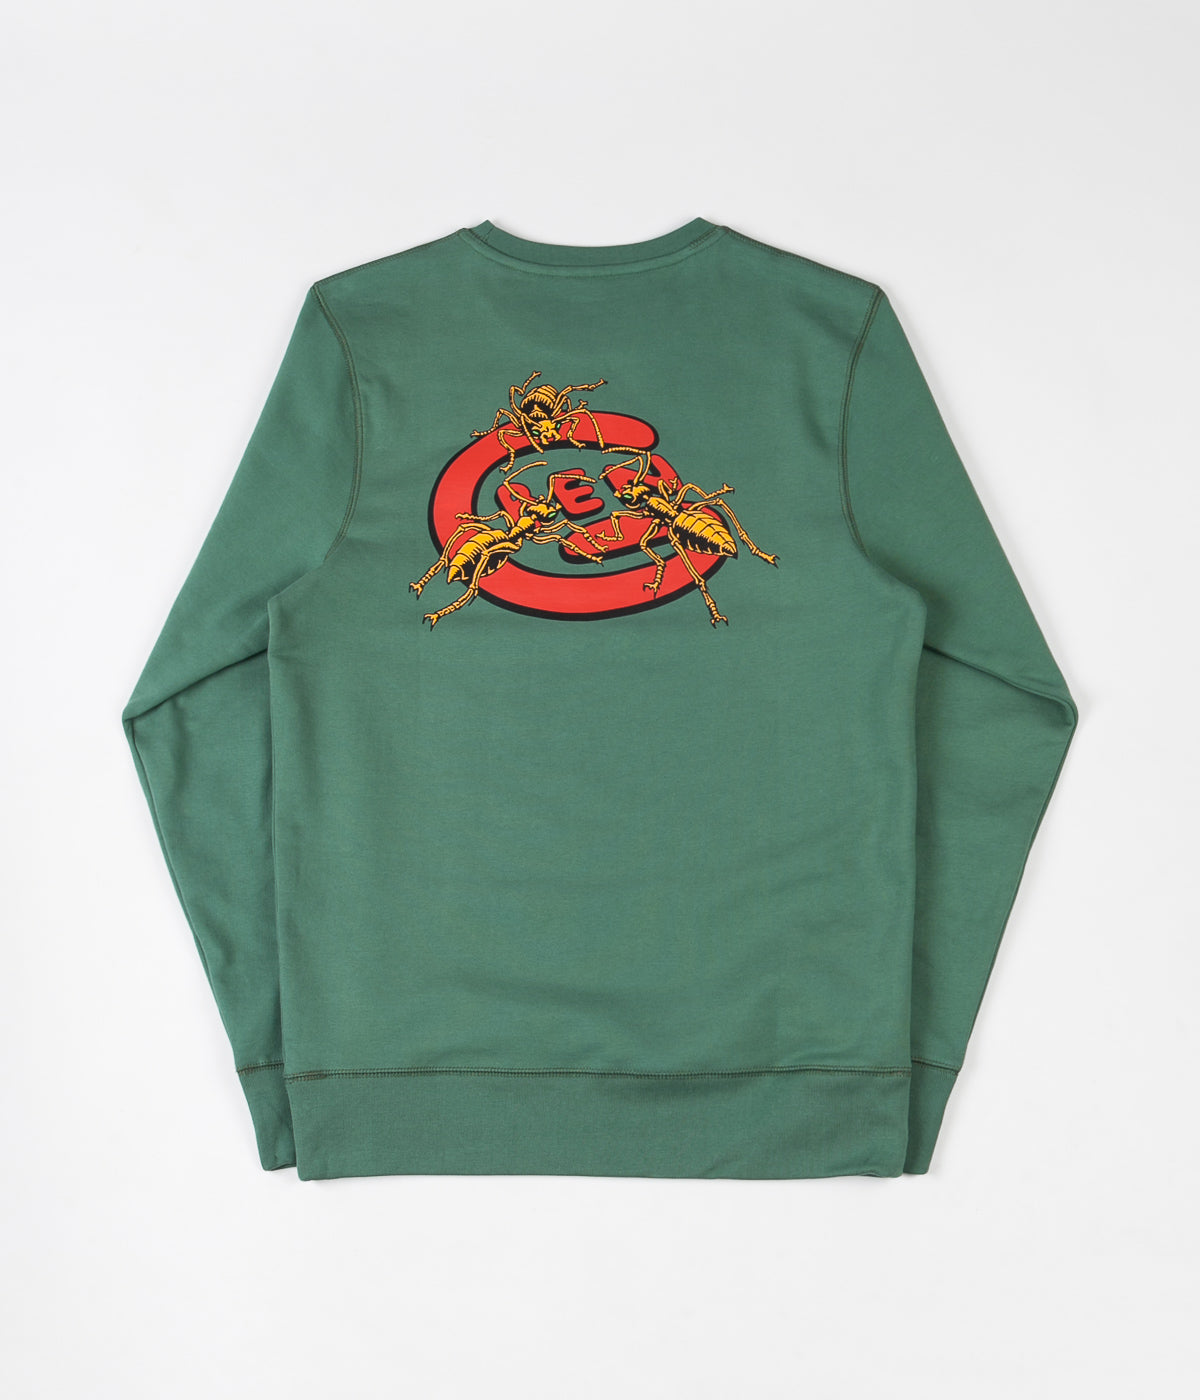 Ben-G Antz Crewneck Sweatshirt - Deep Sea